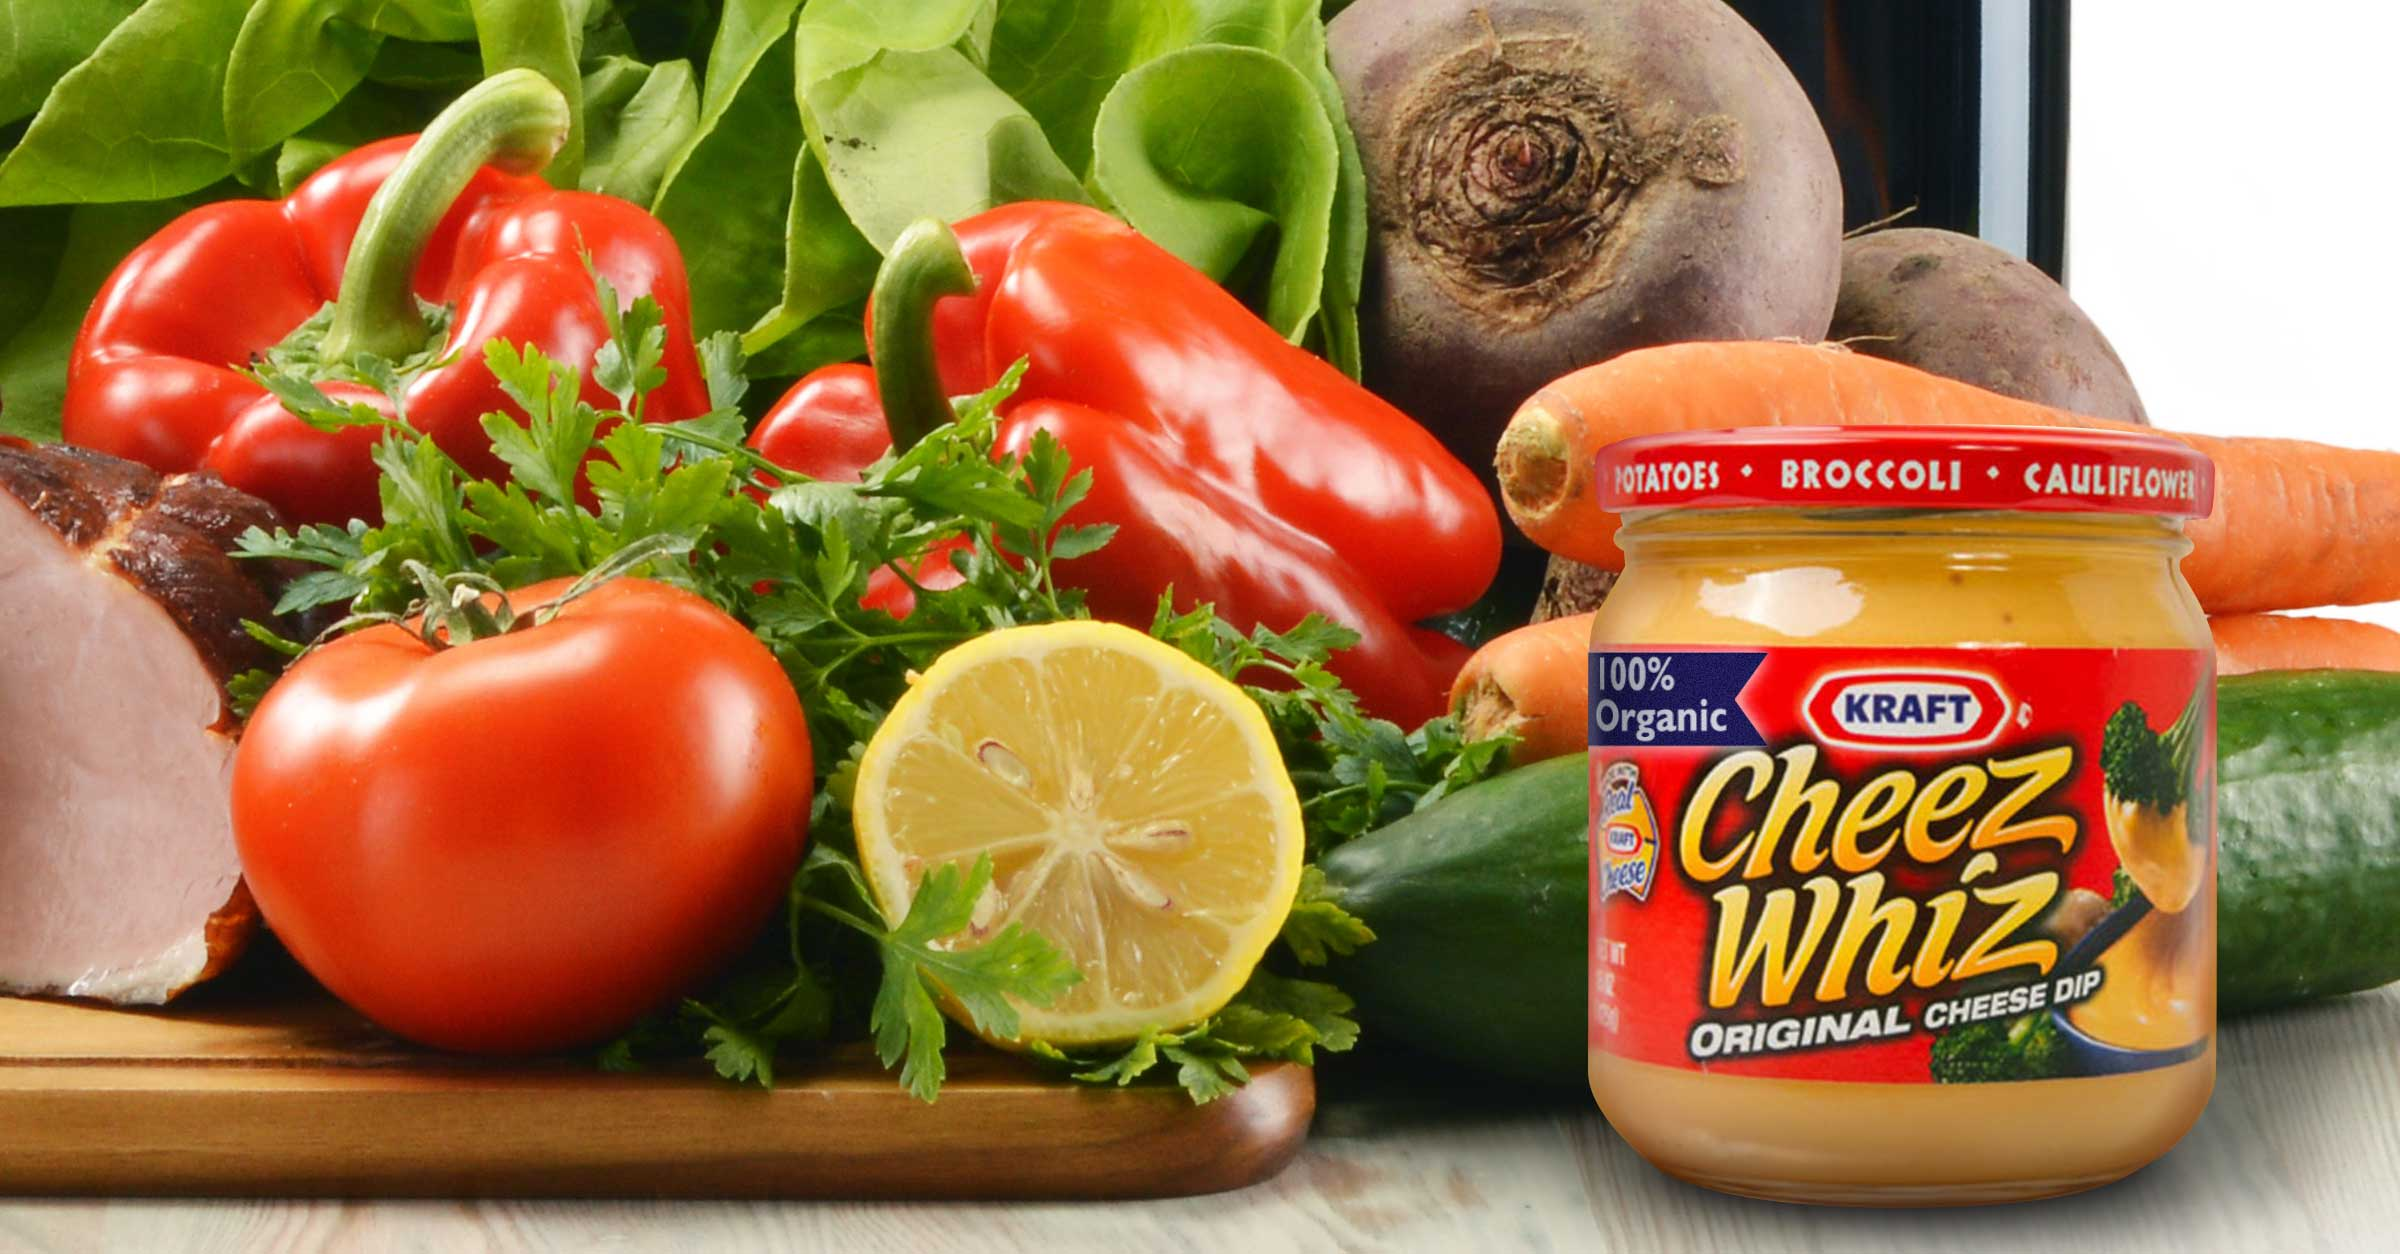 Kraft Cheez Whiz Goes Organic